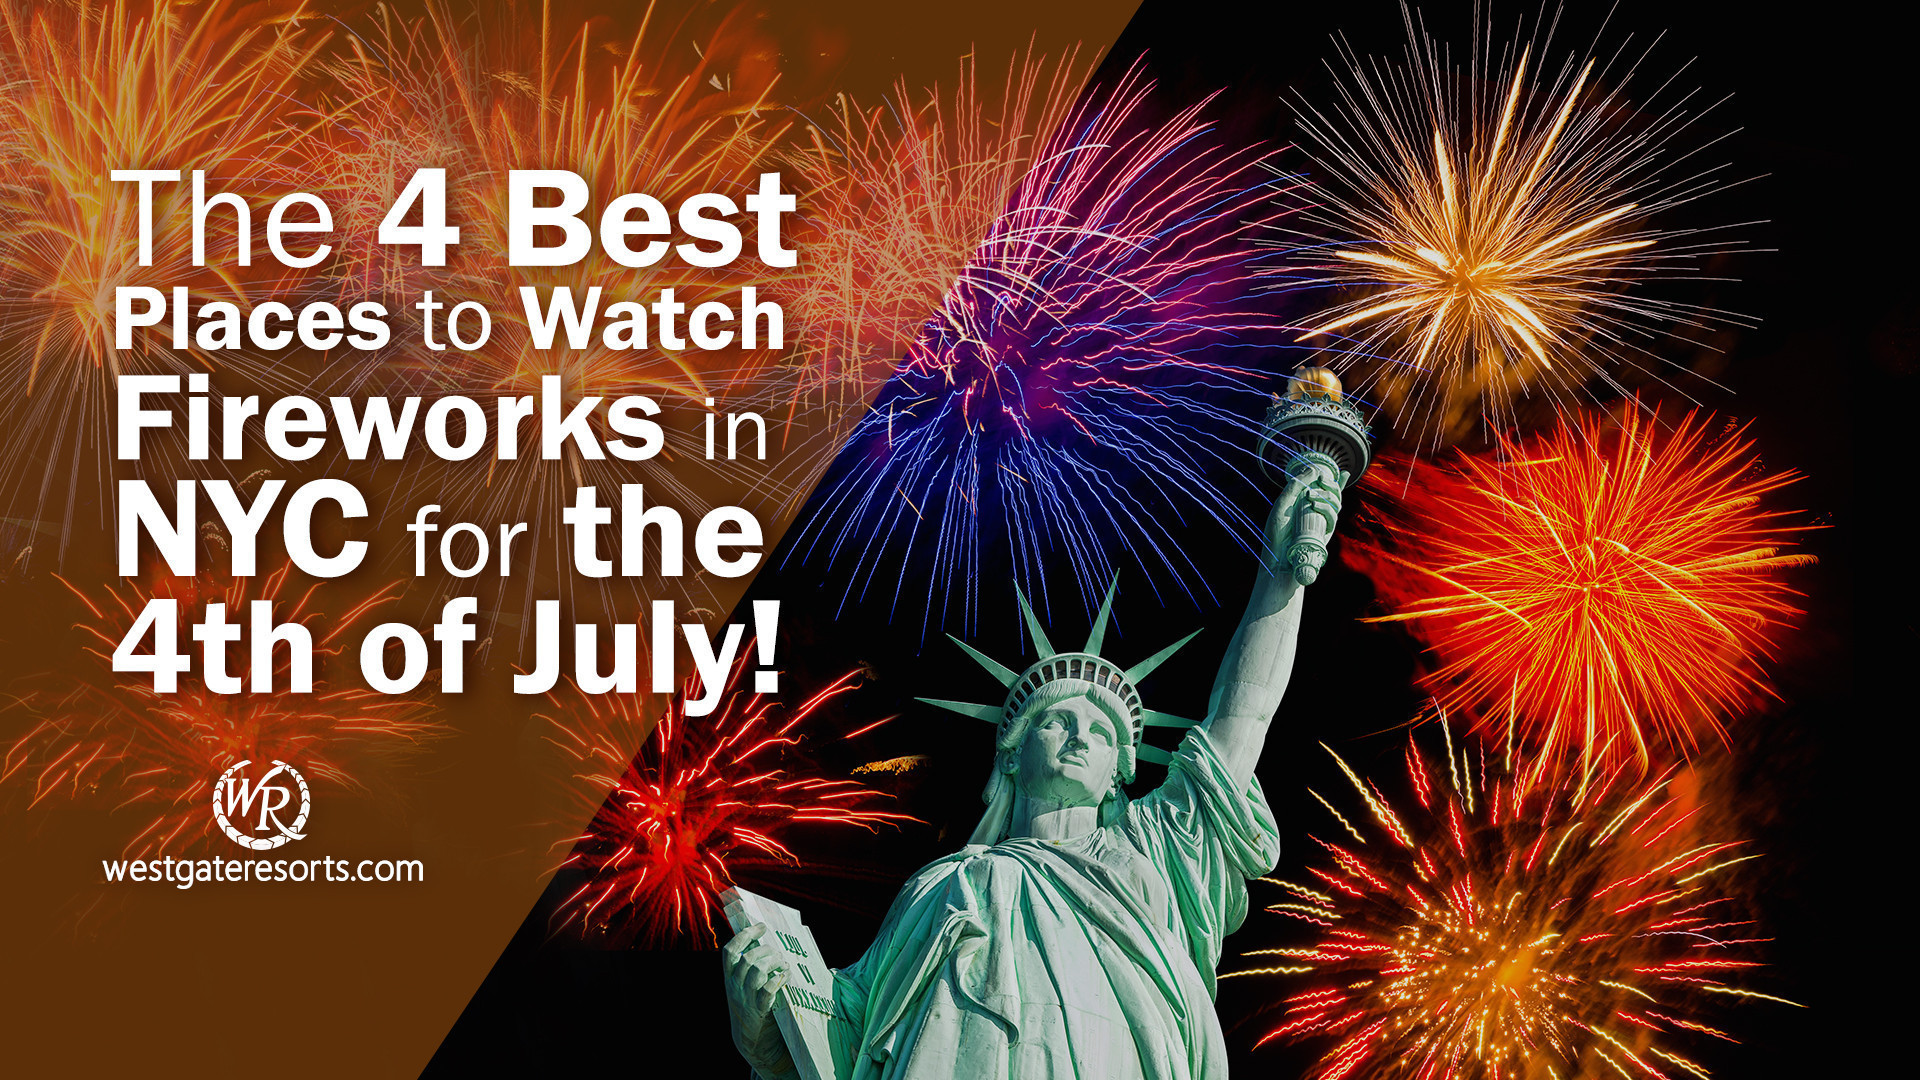 The 4 Best Places to Watch Fireworks in NYC for the 4th of July! | Fireworks NYC Schedules